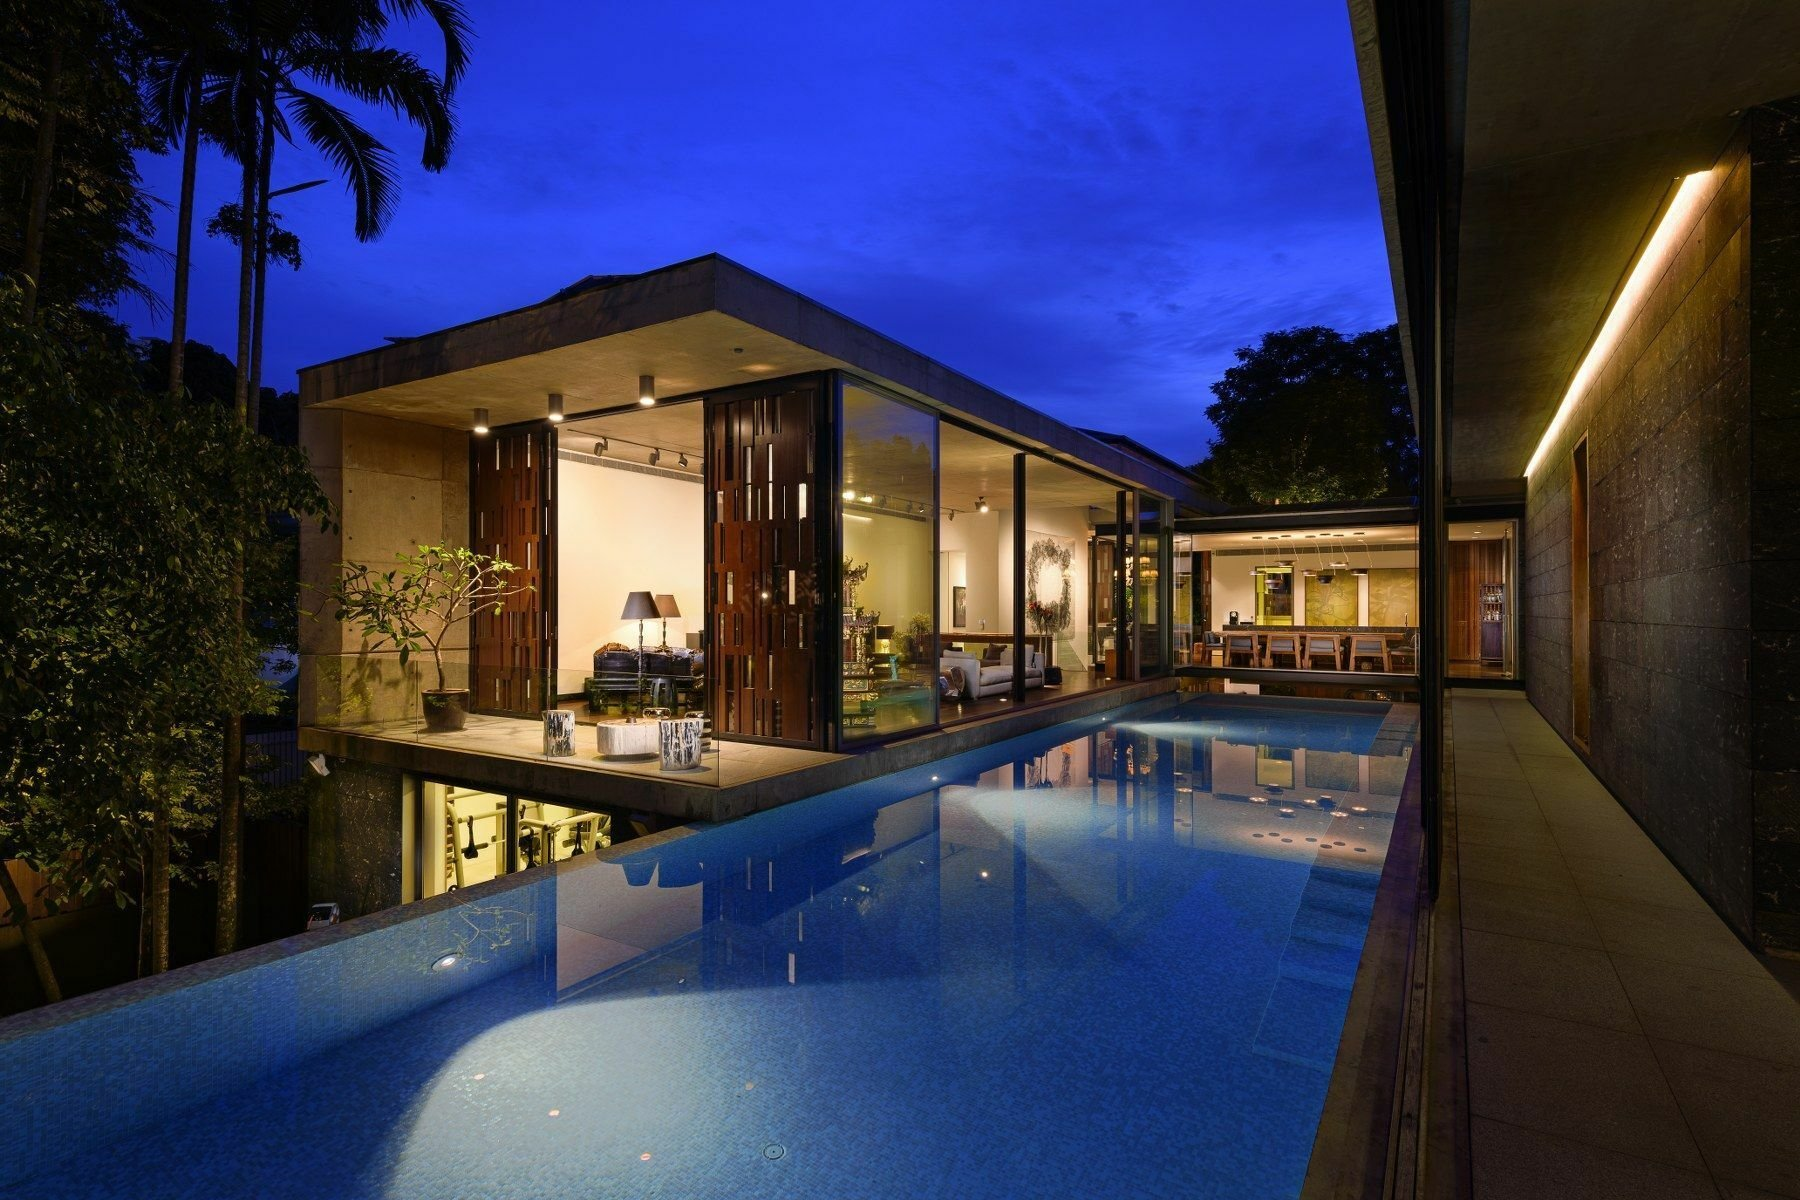 House in Singapore 1